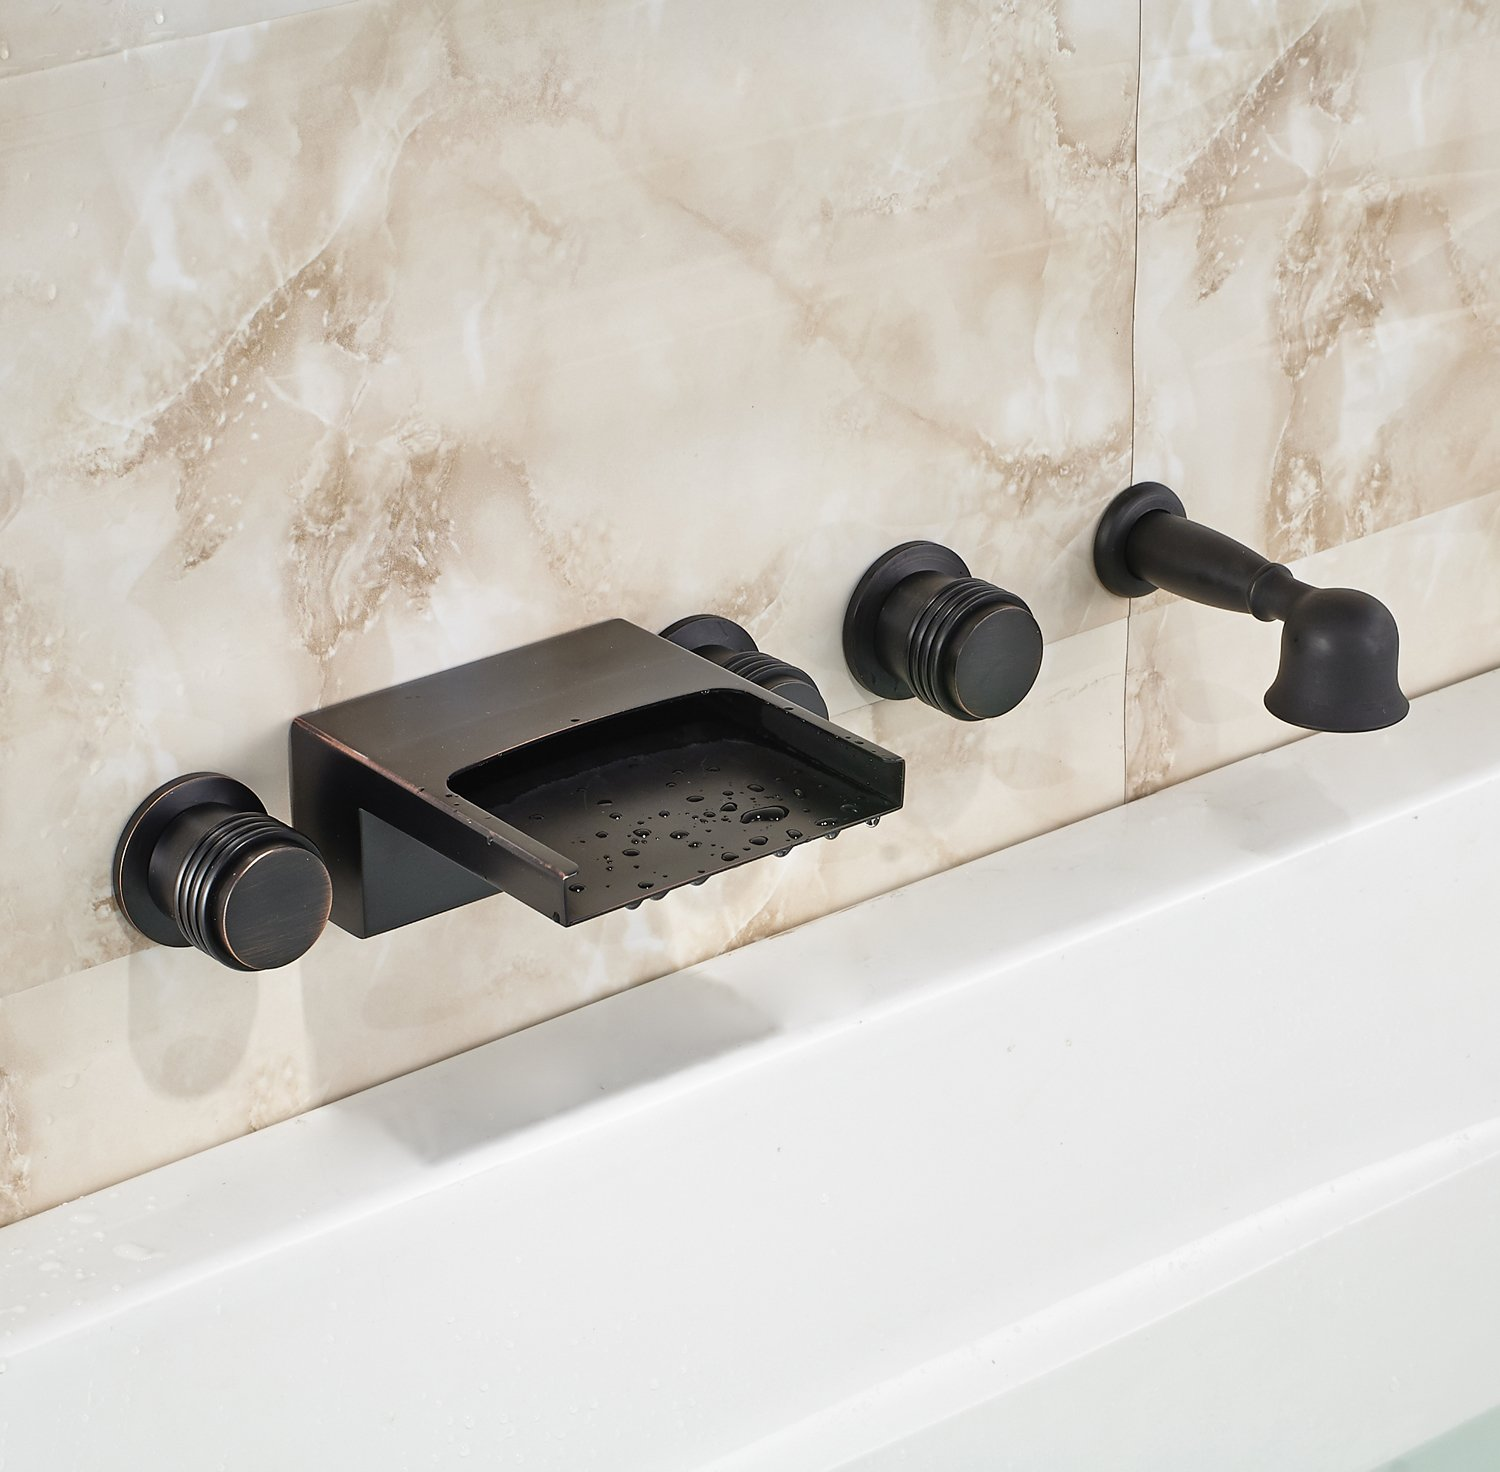 Oil Rubbed Bronze Wall Mounted 3 Knobs Bathtub Faucet Waterfall ...